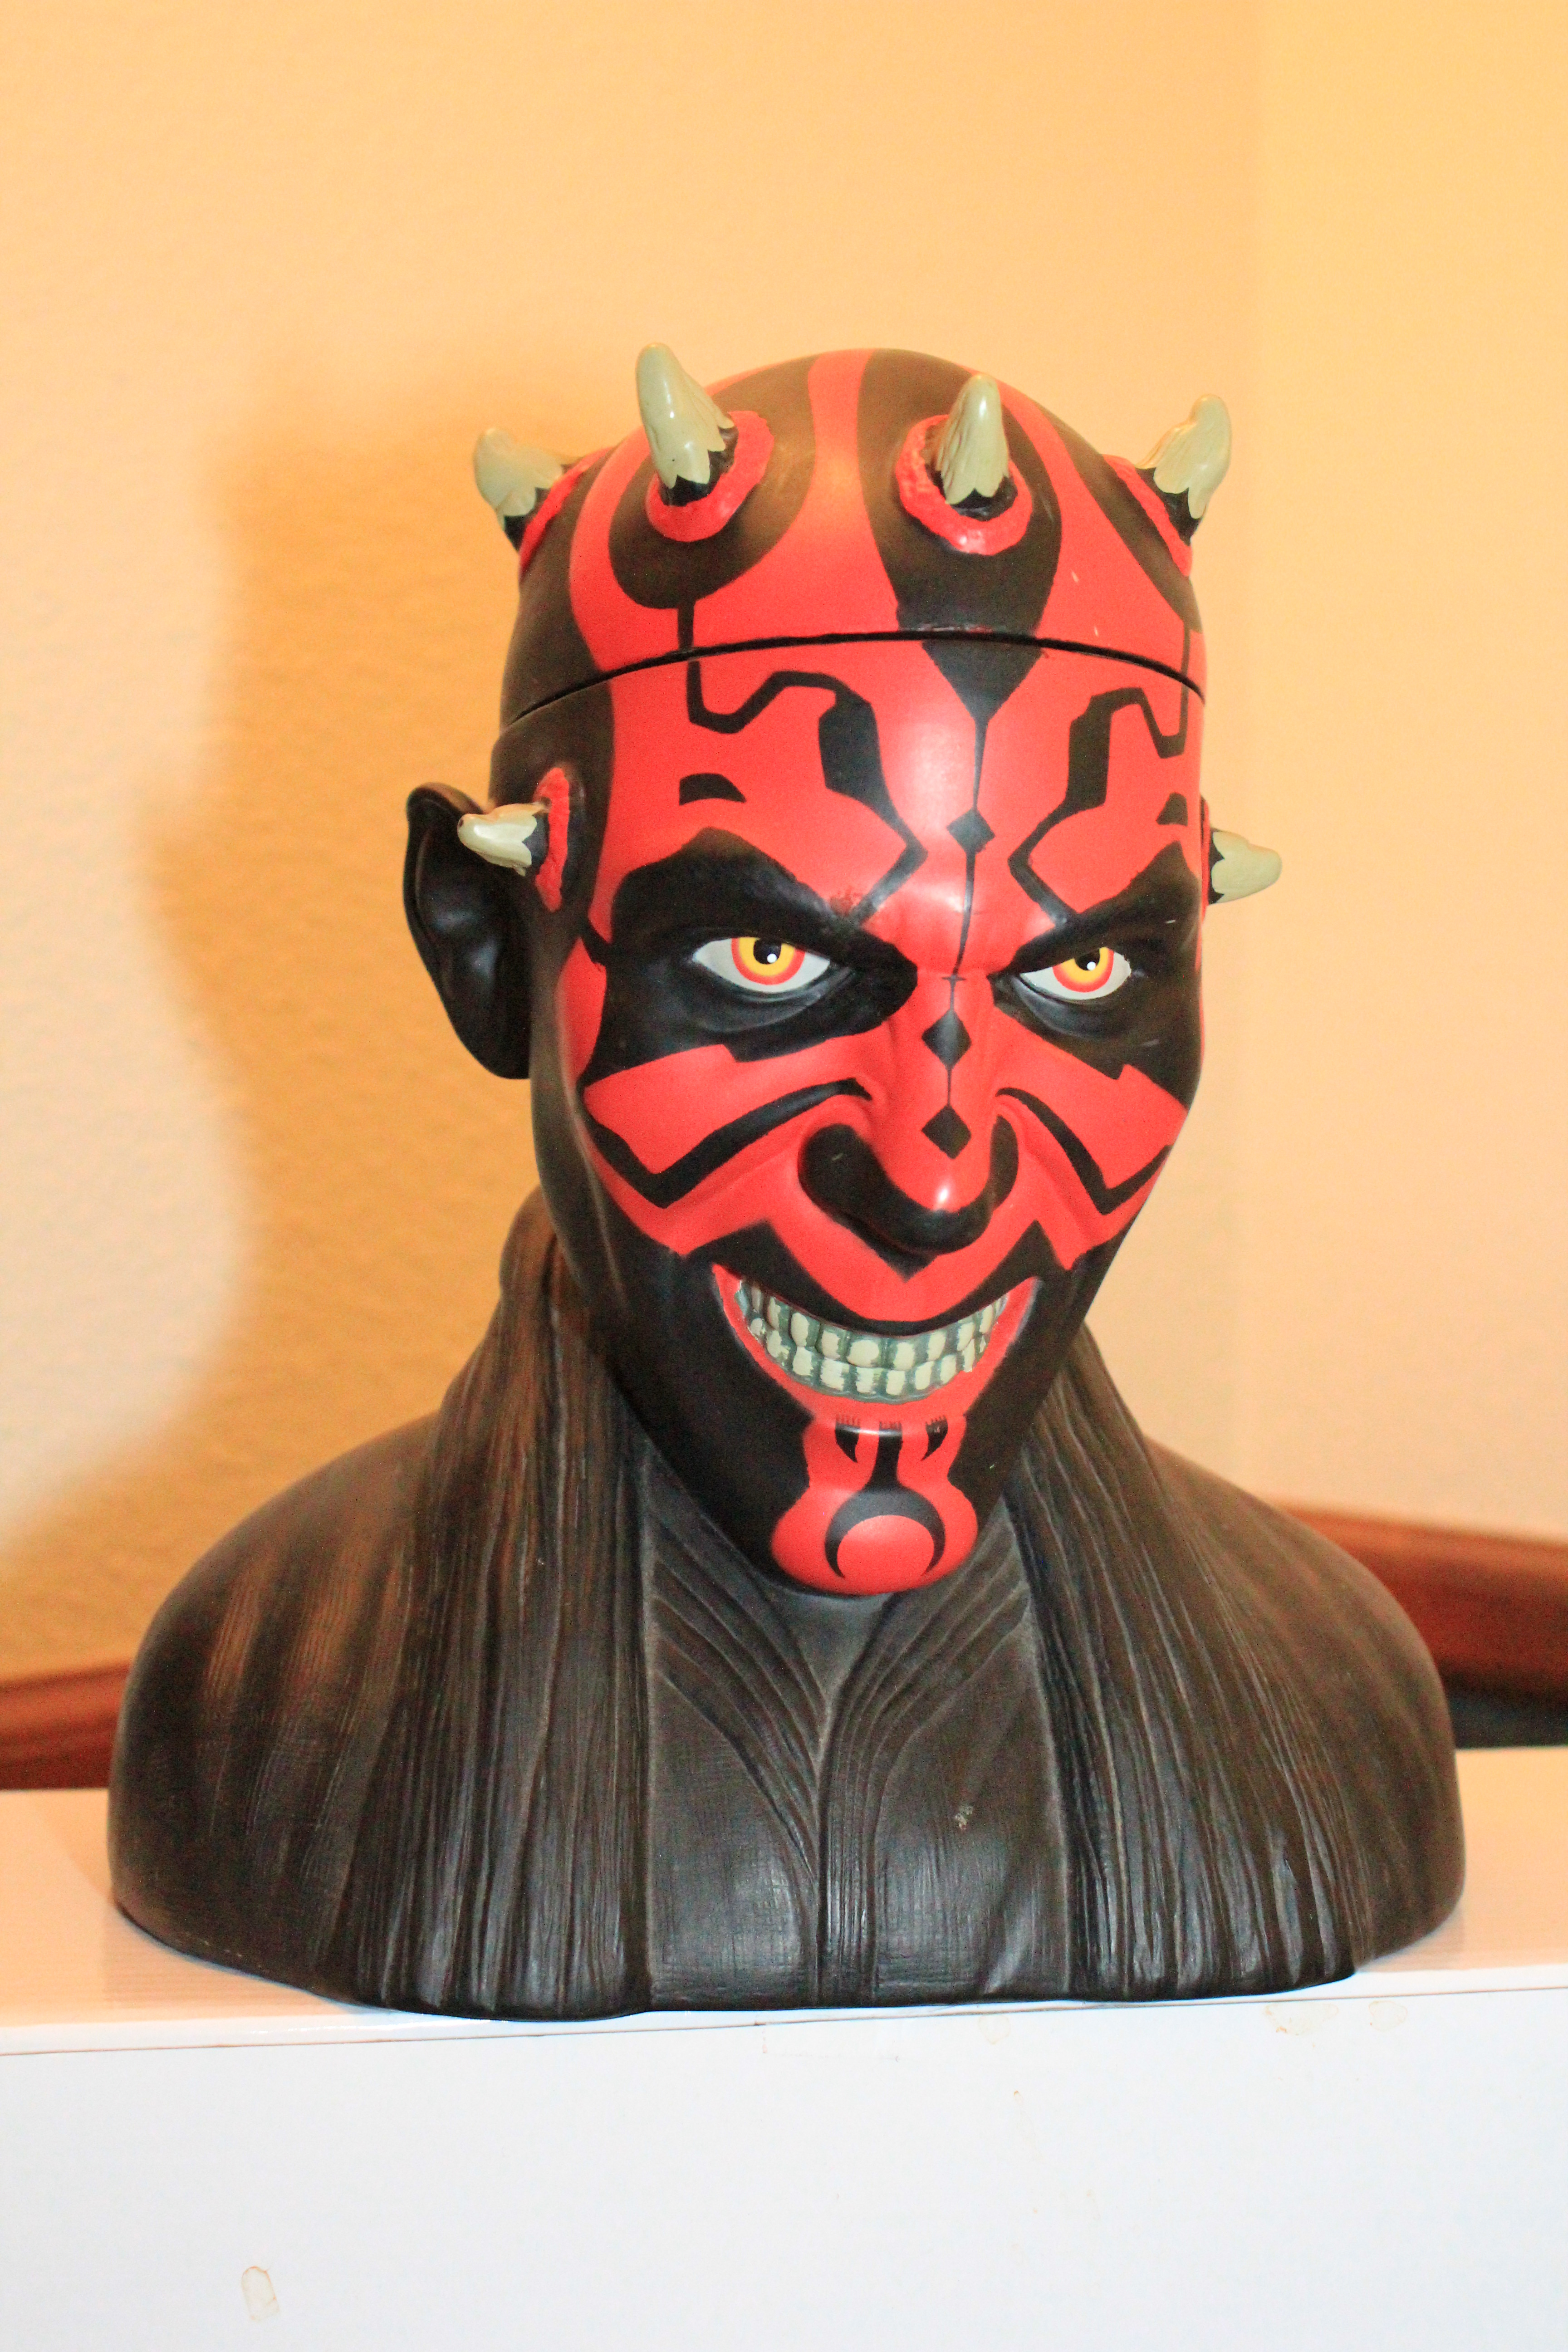 Star Wars Cookie Jars Darth Maul Cookie Jar Bust By Applause Review Star Wars